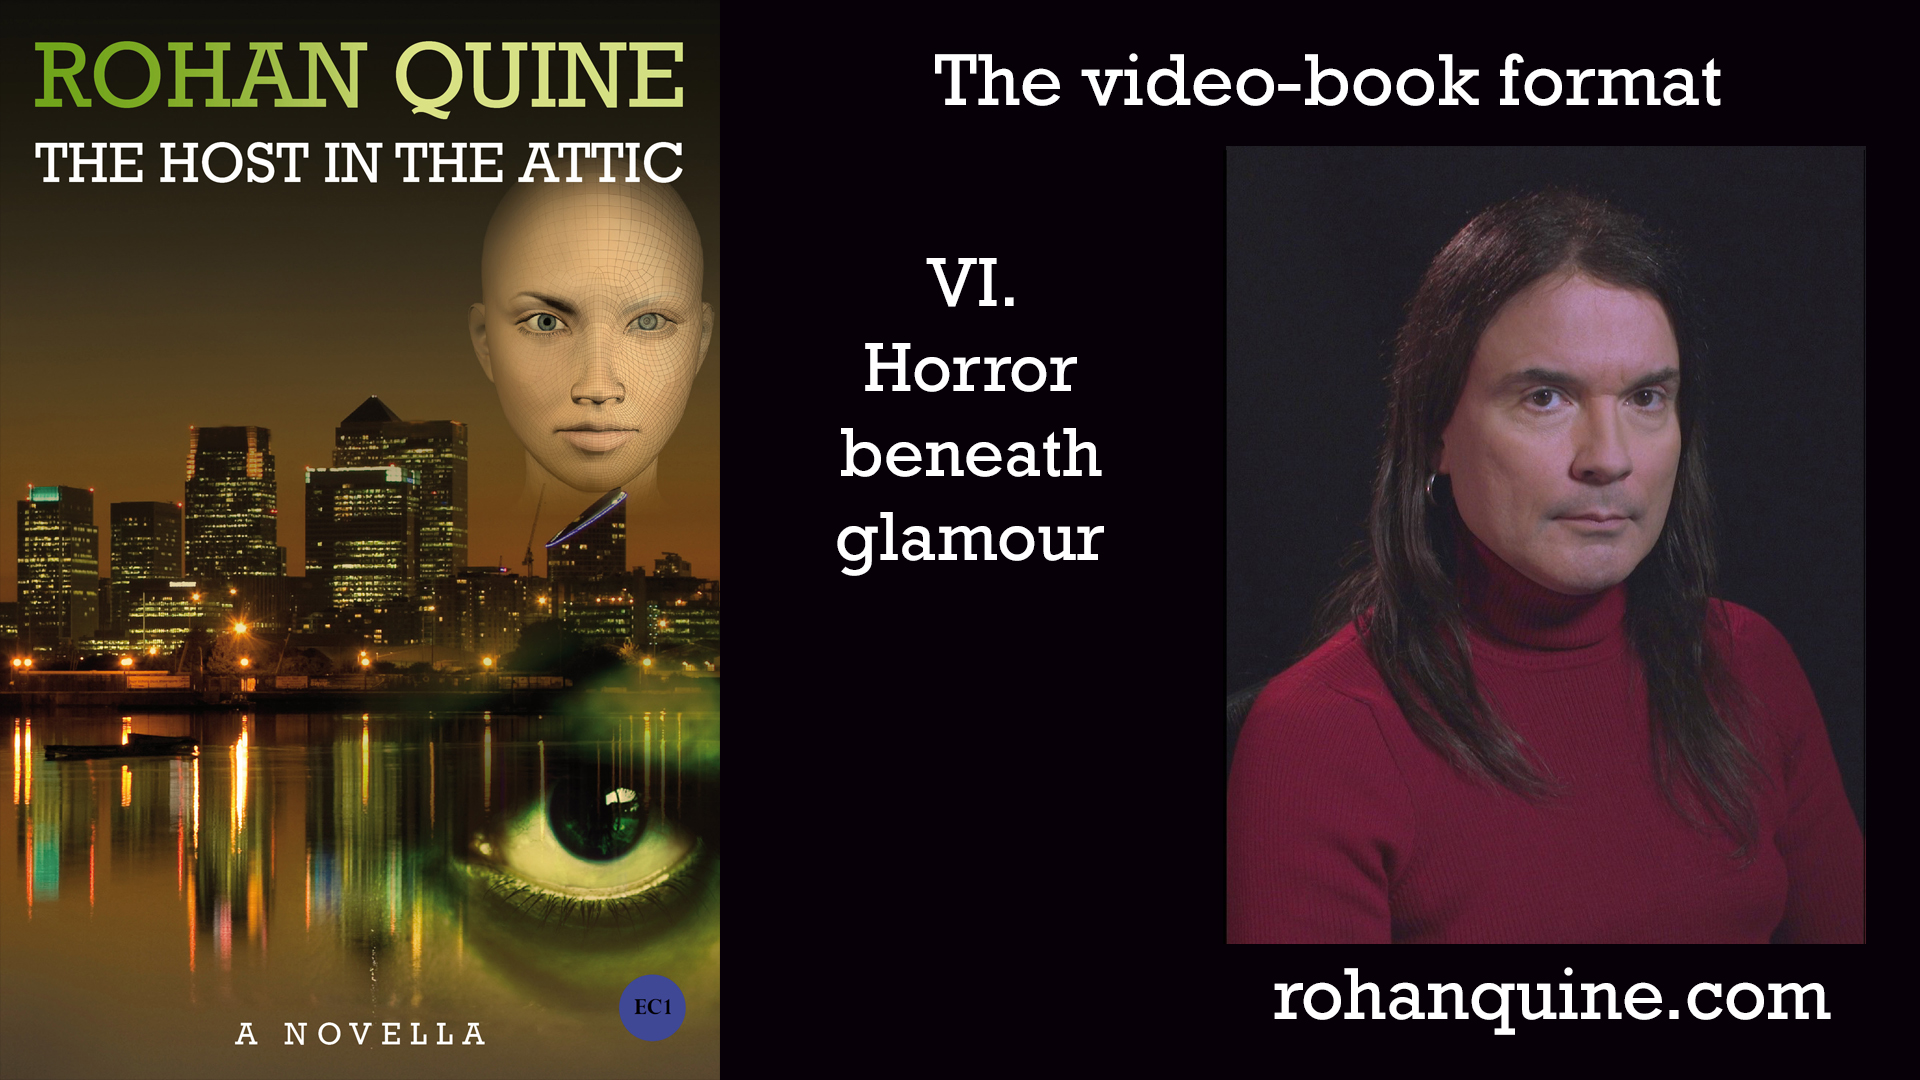 THE HOST IN THE ATTIC by Rohan Quine - video-book format - chapter VI